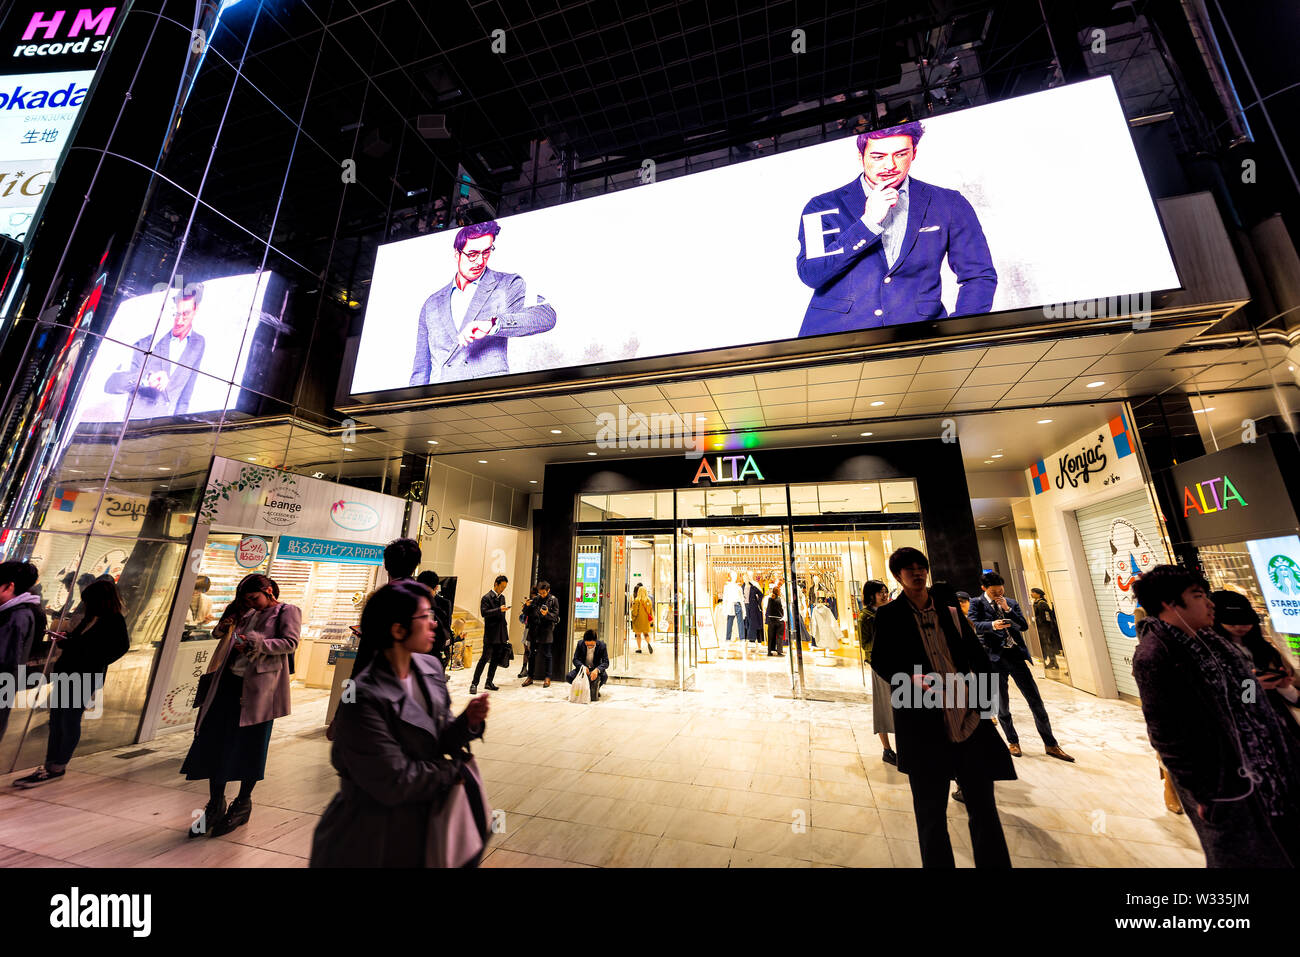 Shinjuku, Japan - April 4, 2019: Street outside view on entrance to Studio Alta shopping mall with stores, shops and people walking on sidewalk at nig - Stock Image